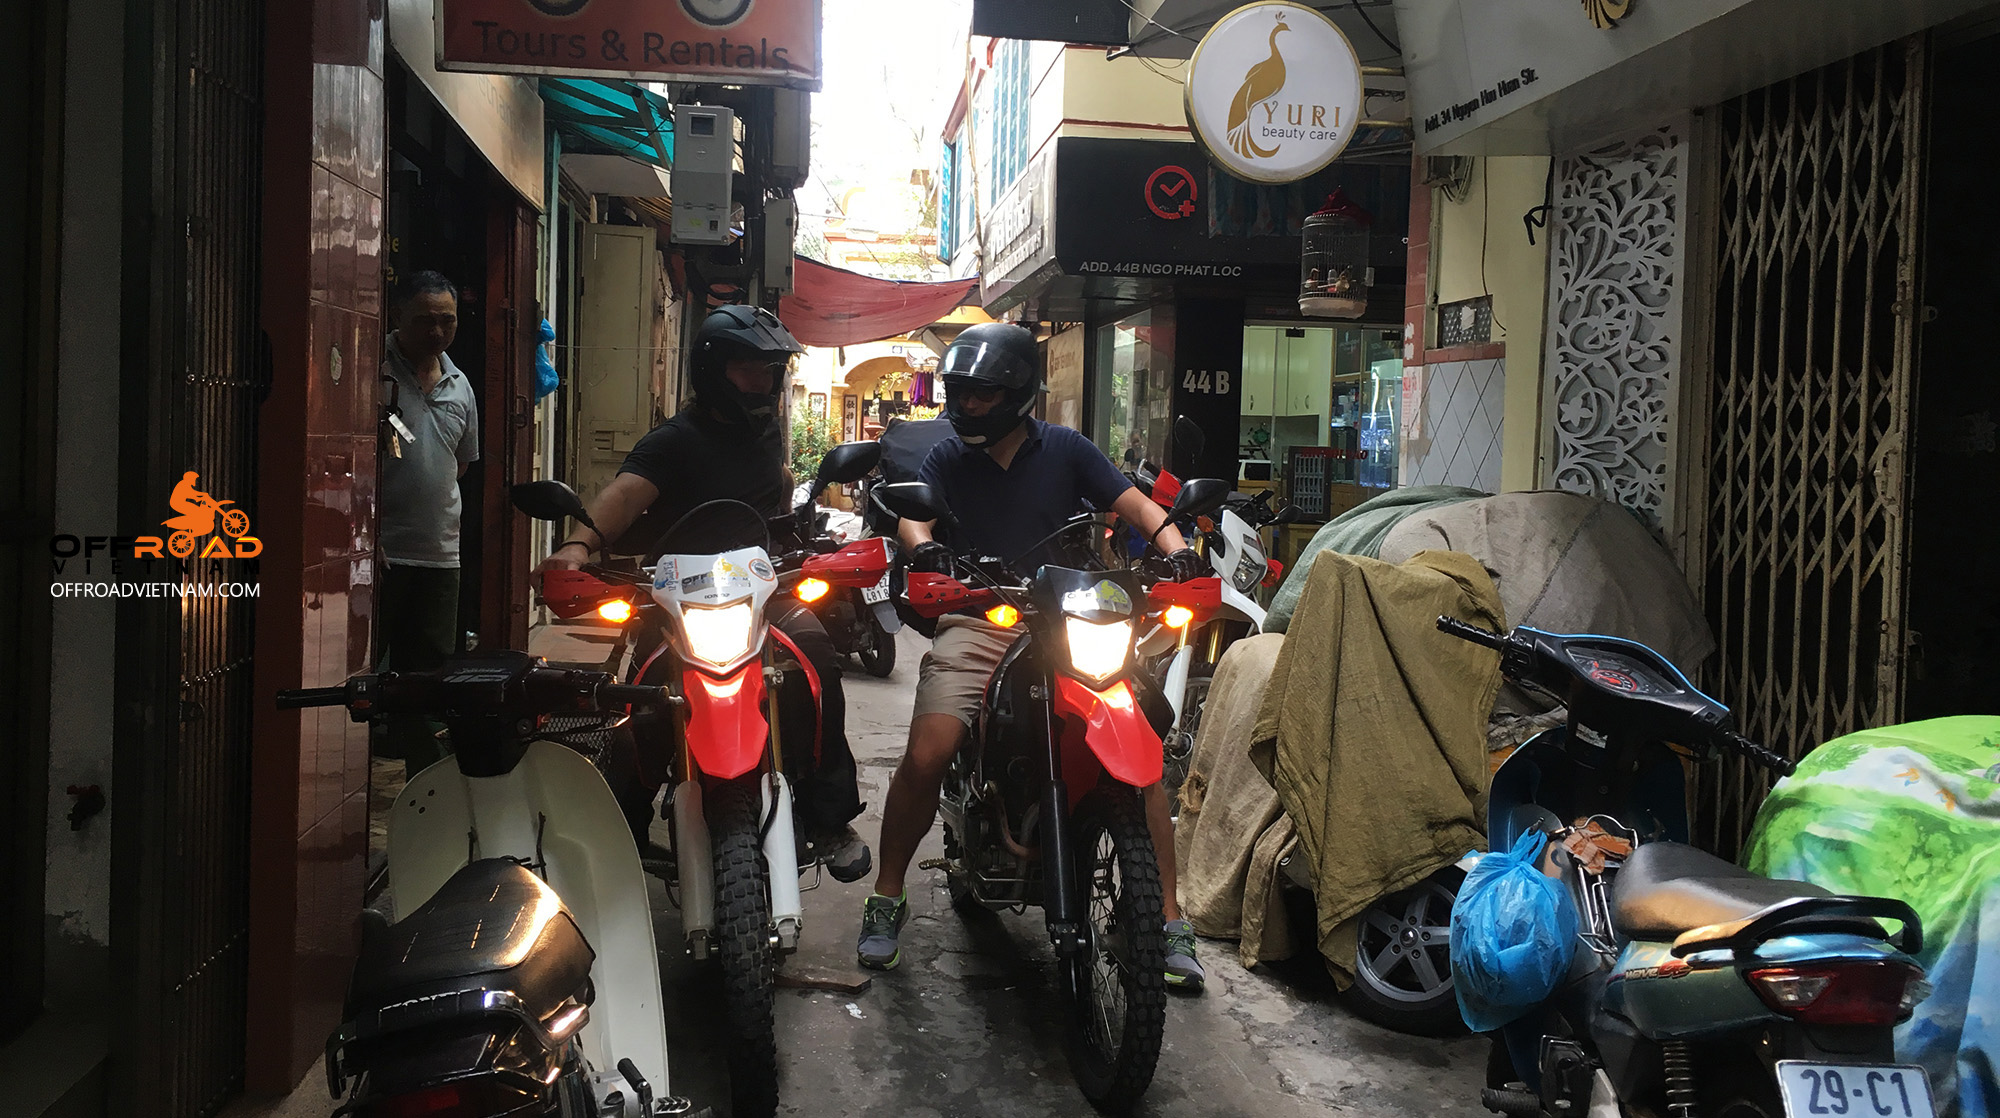 Start your off-road Vietnam motorbike tours Vietnamese way and Hanoi style. Space is so narrow here.